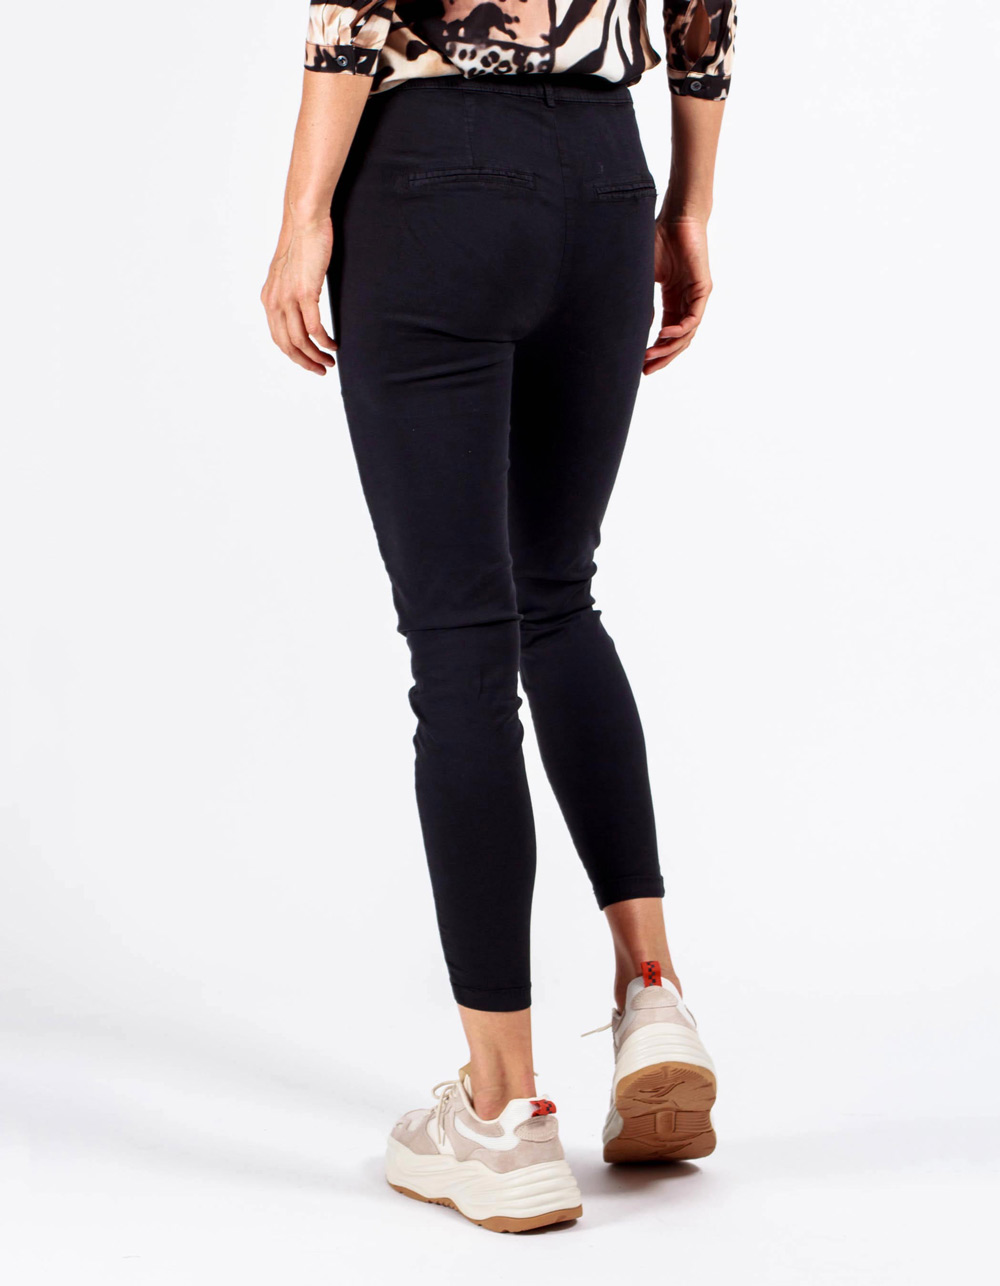 Pantalón tejanero negro mid rise skinny fit - Backside